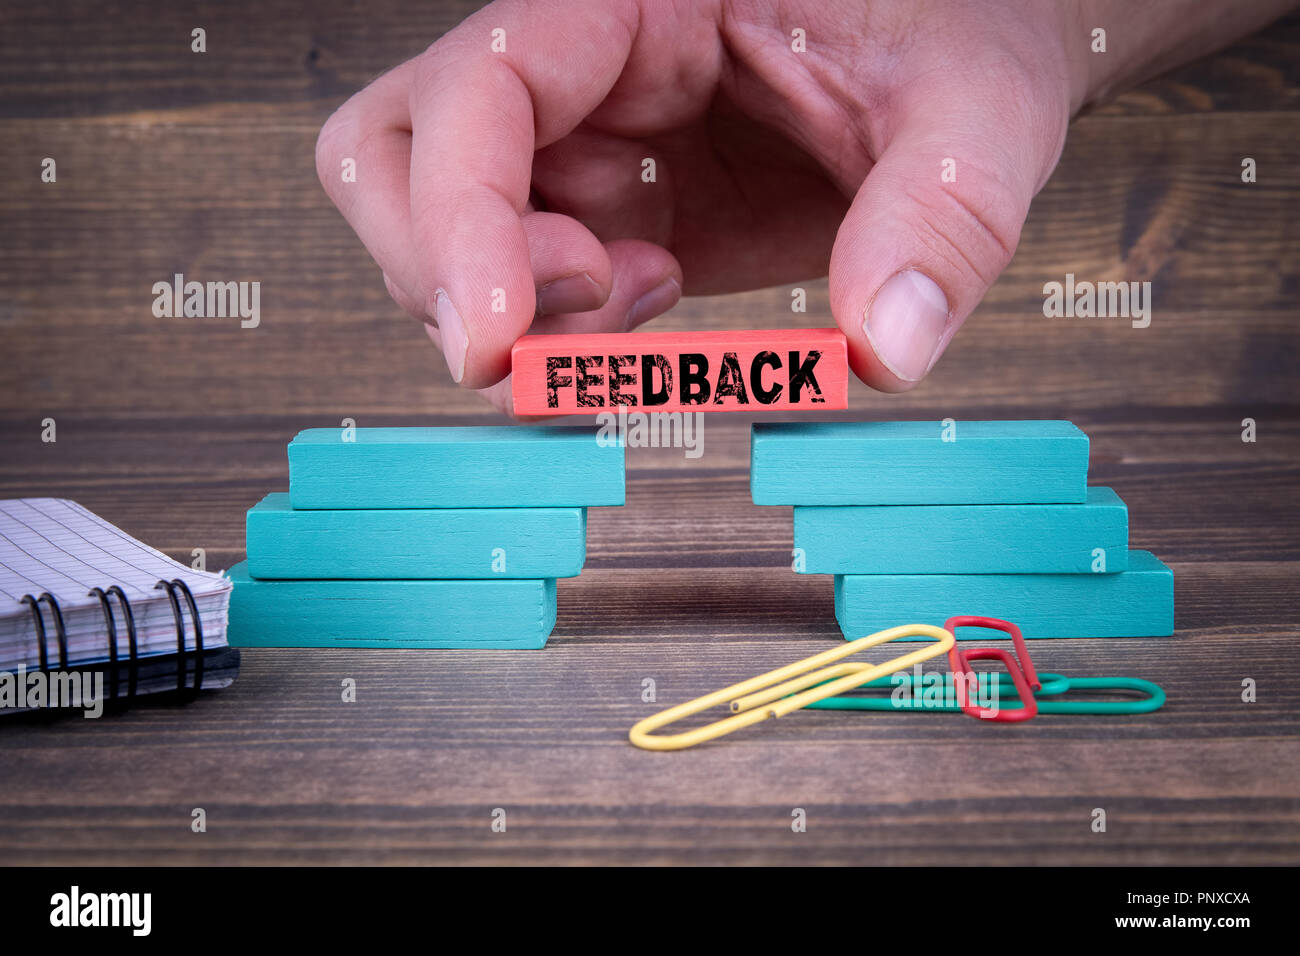 Feedback Business, social media and marketing  Concept - Stock Image